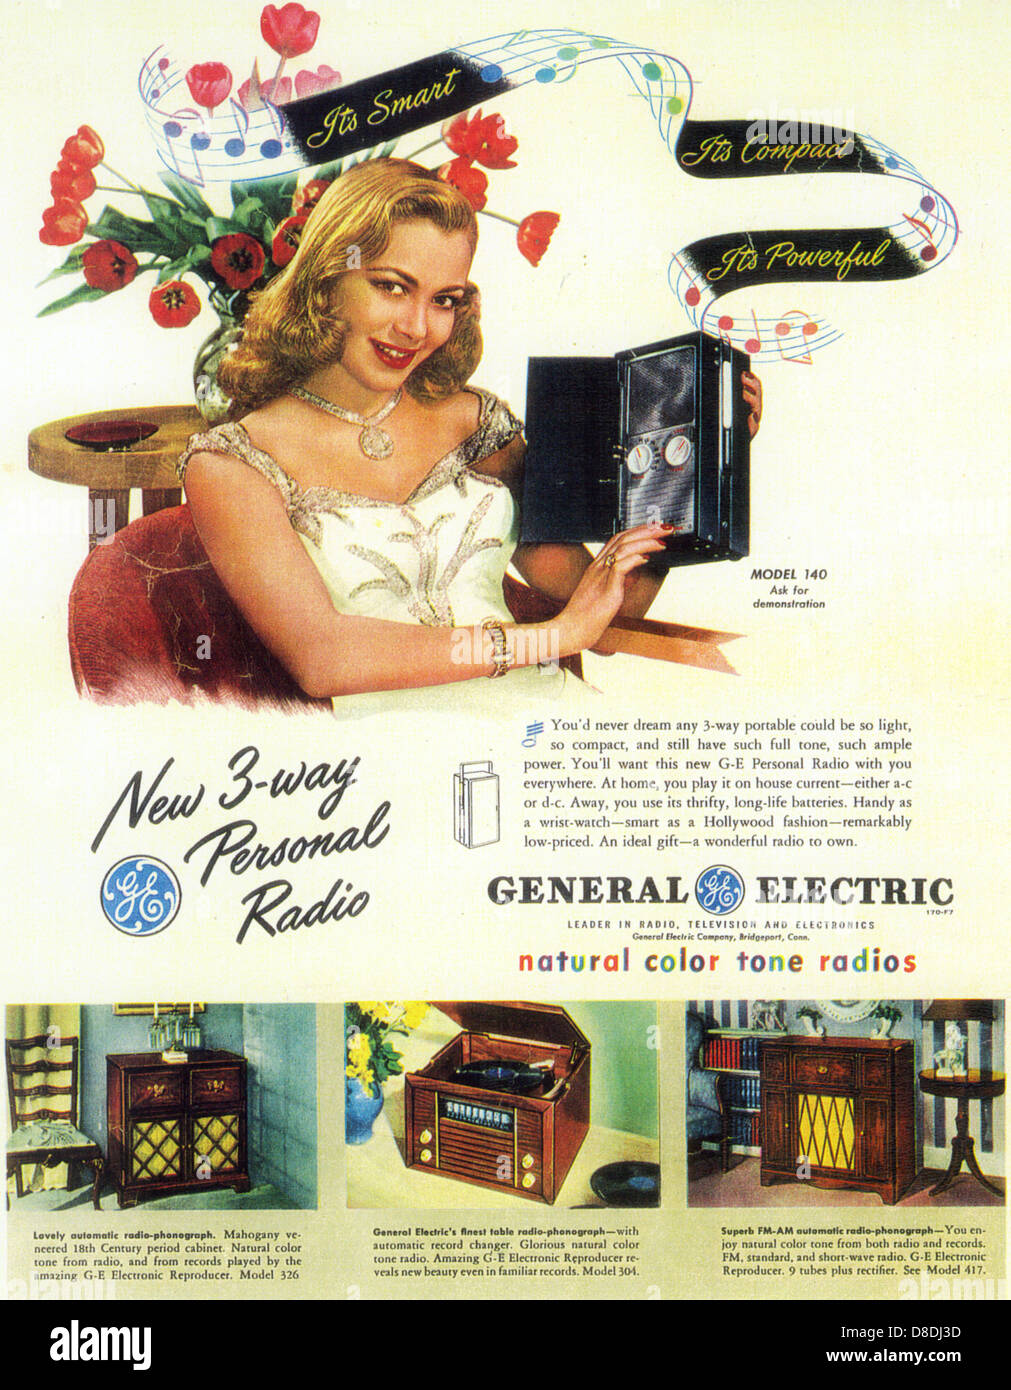 GENERAL ELECTRIC PERSONAL RADIO Advert 1947